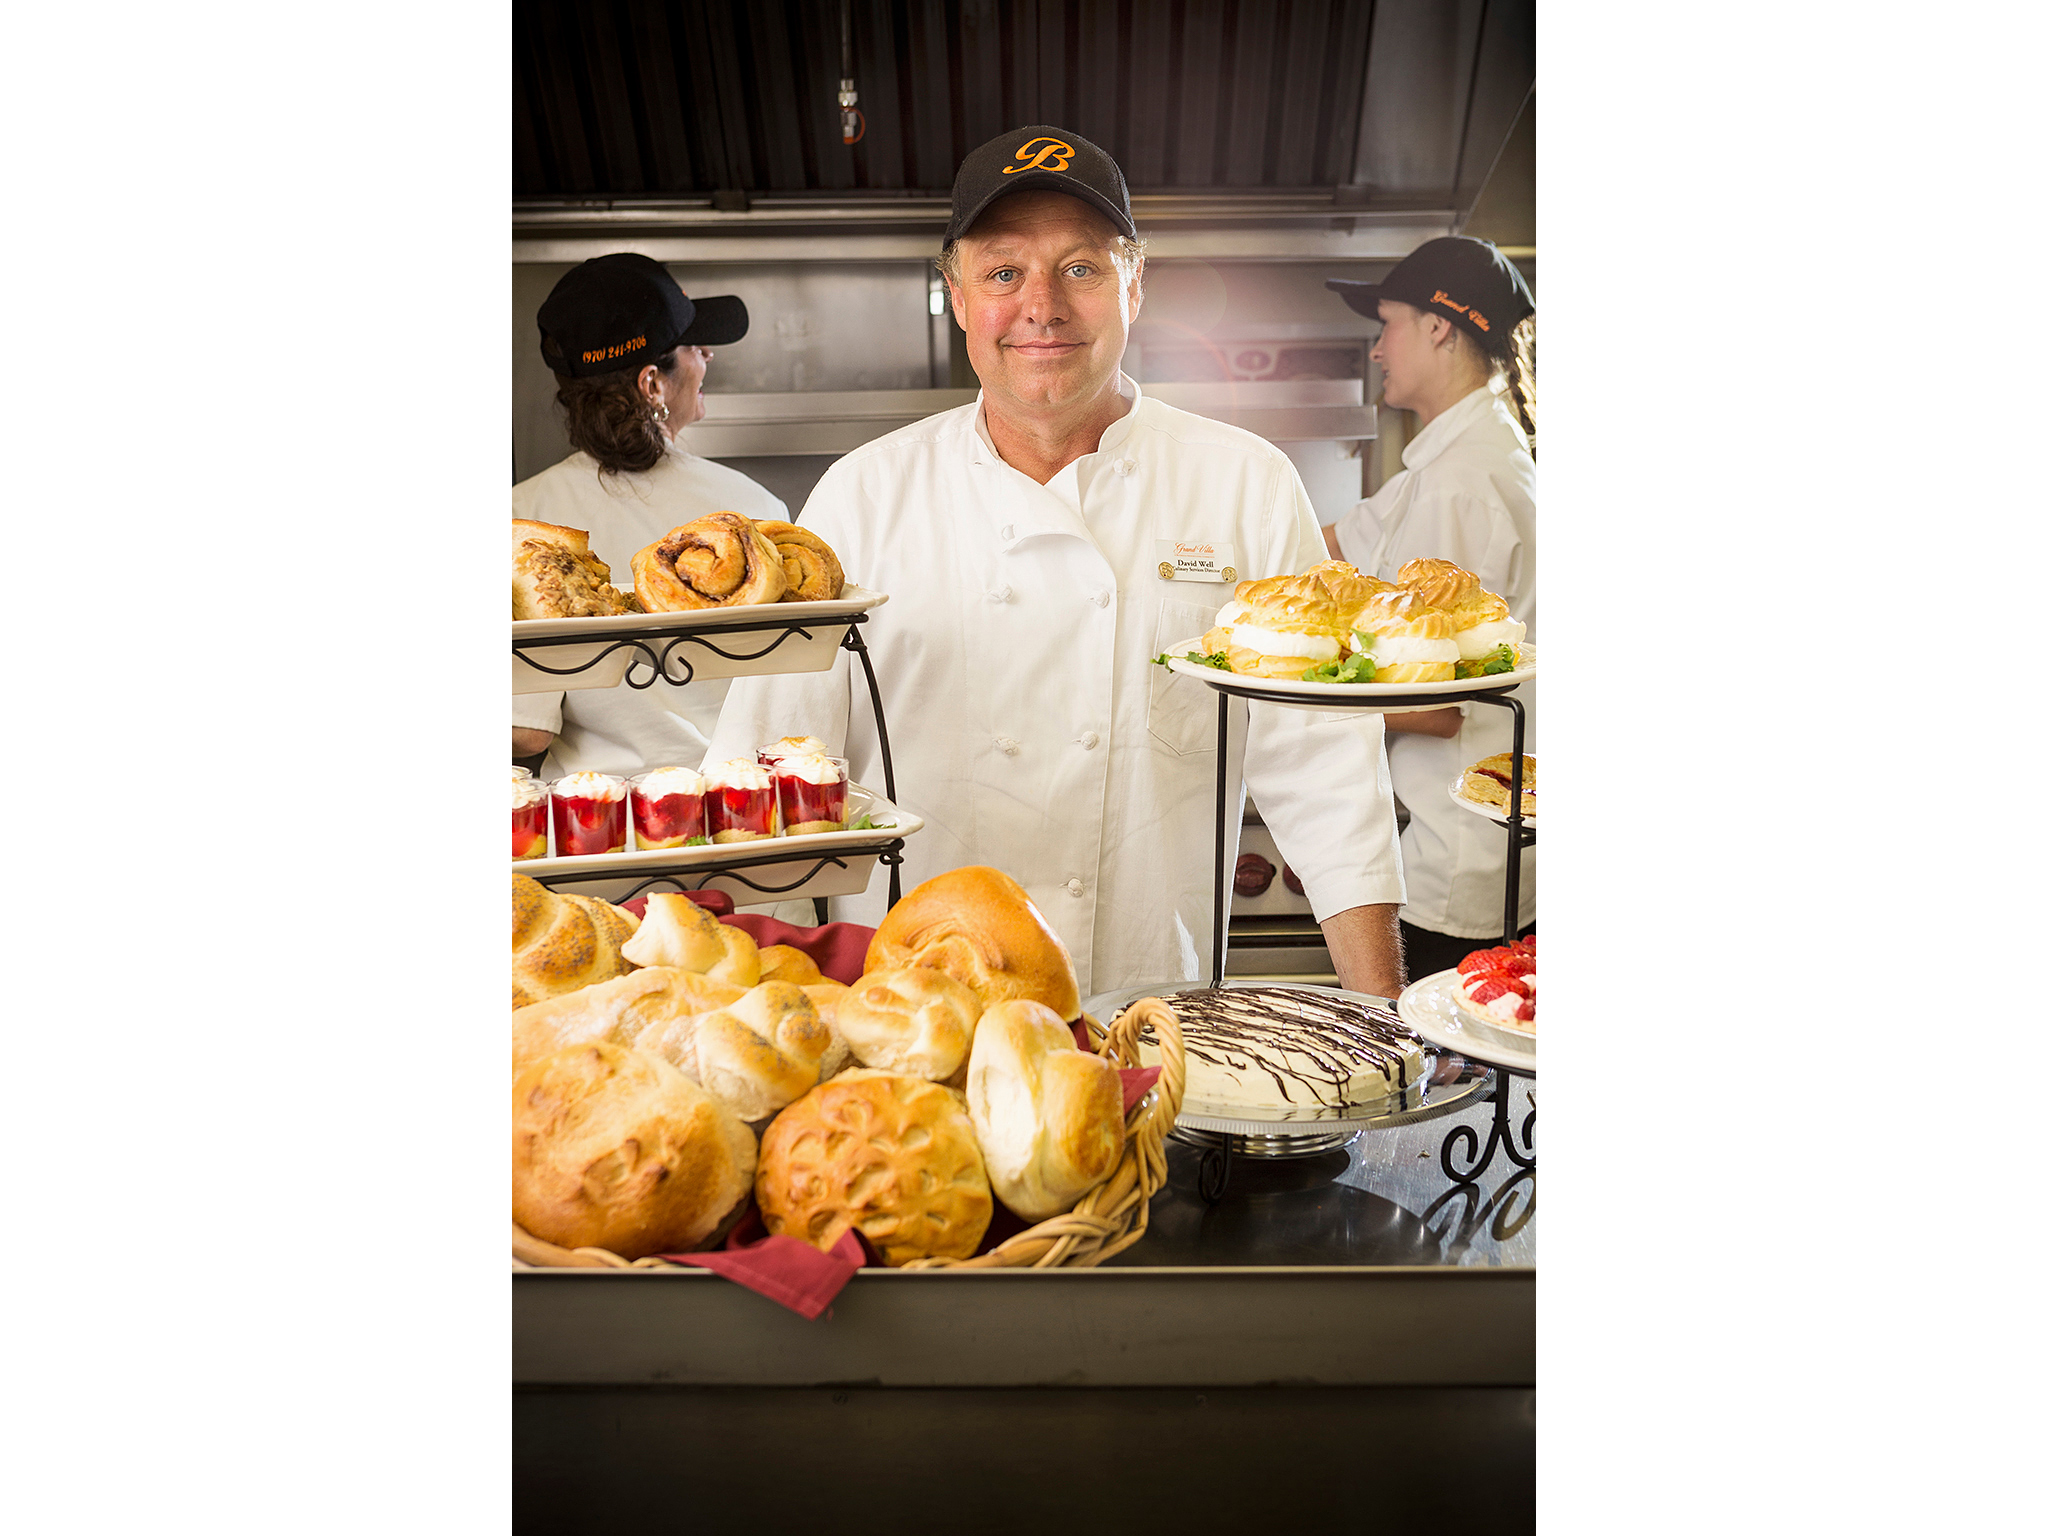 Pastry chef in kitchen with pastries on display